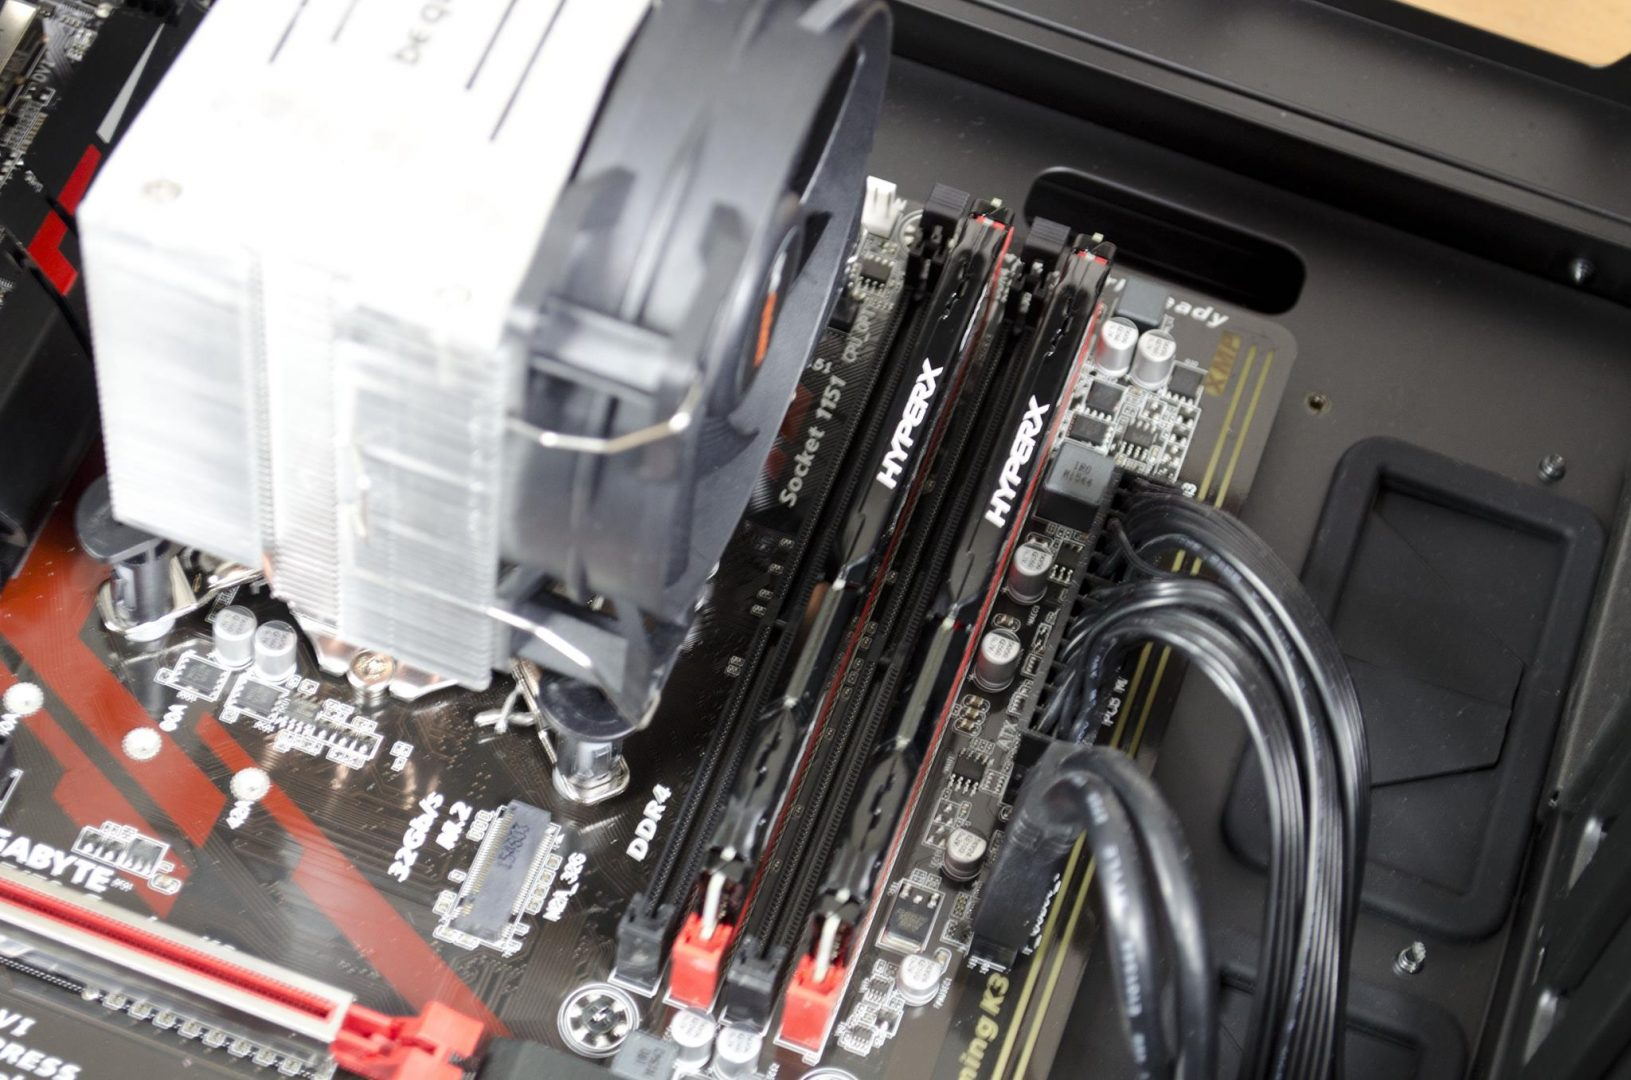 How To Build An Add On Current Limiter For Your Psu